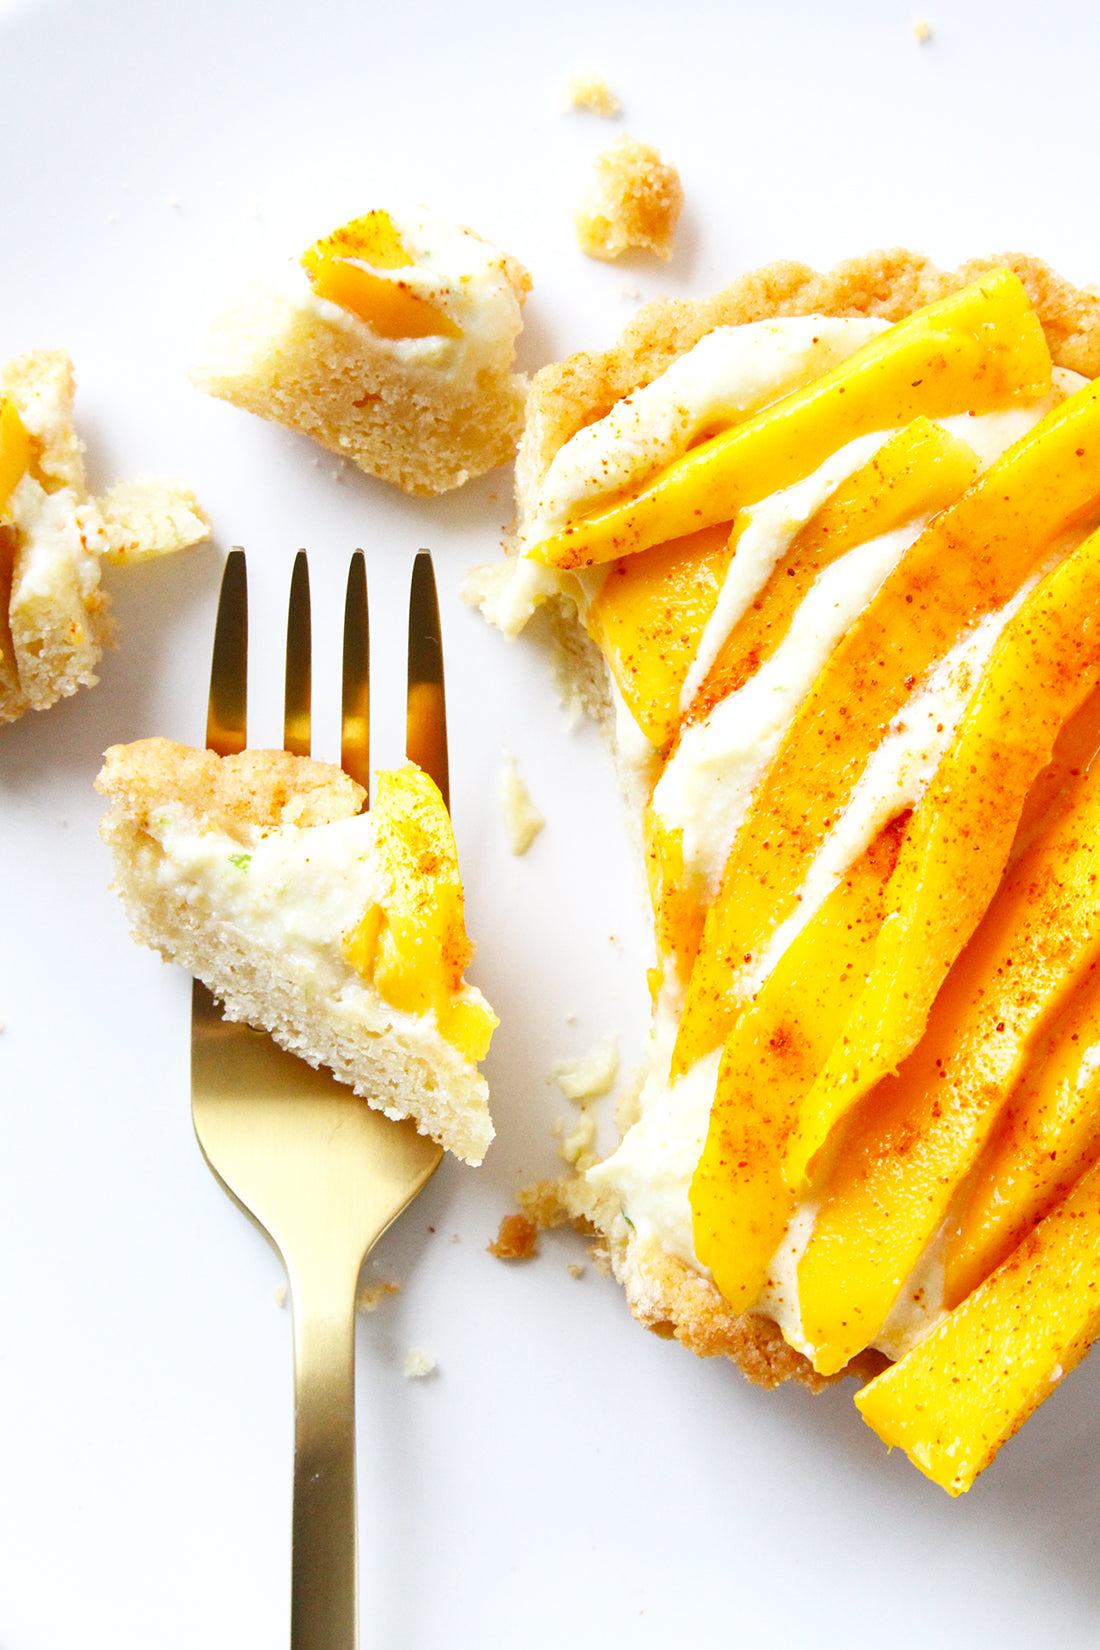 Close up image of part of a Miss Jones Baking Co Fruit Cart Tart next to a fork with a bite on it